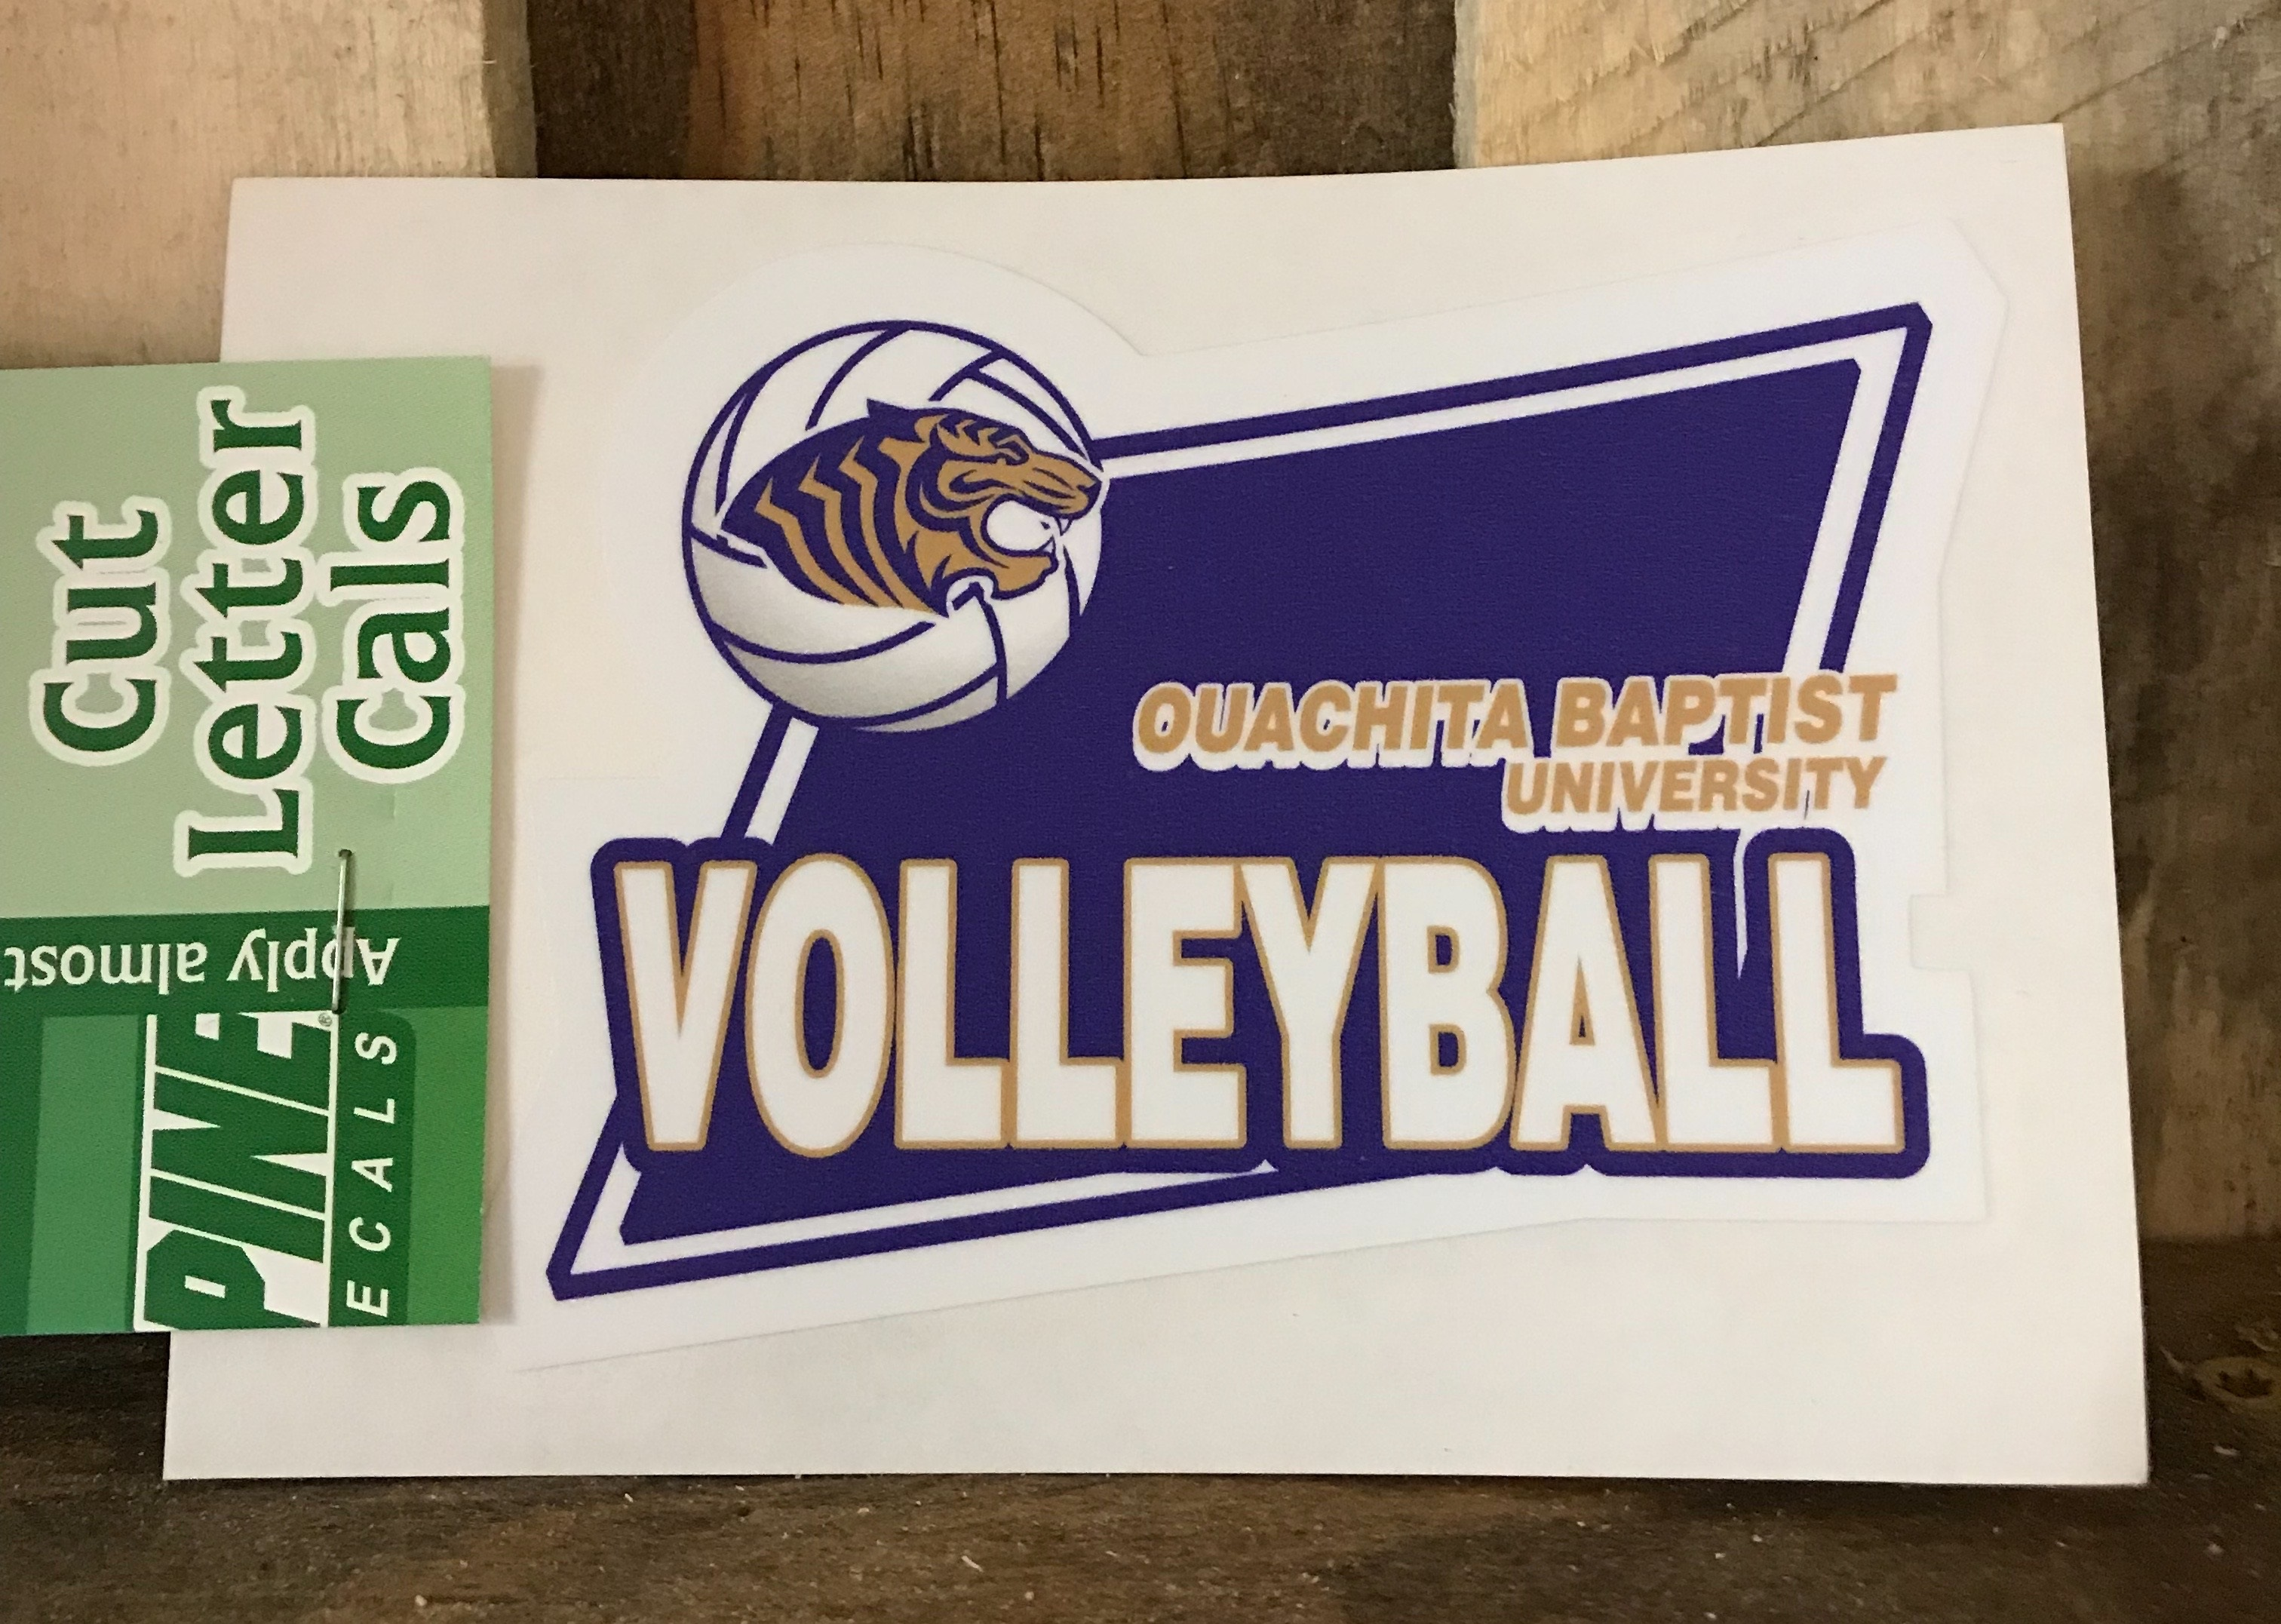 OBU VOLLEYBALL CUT LETTER DECAL